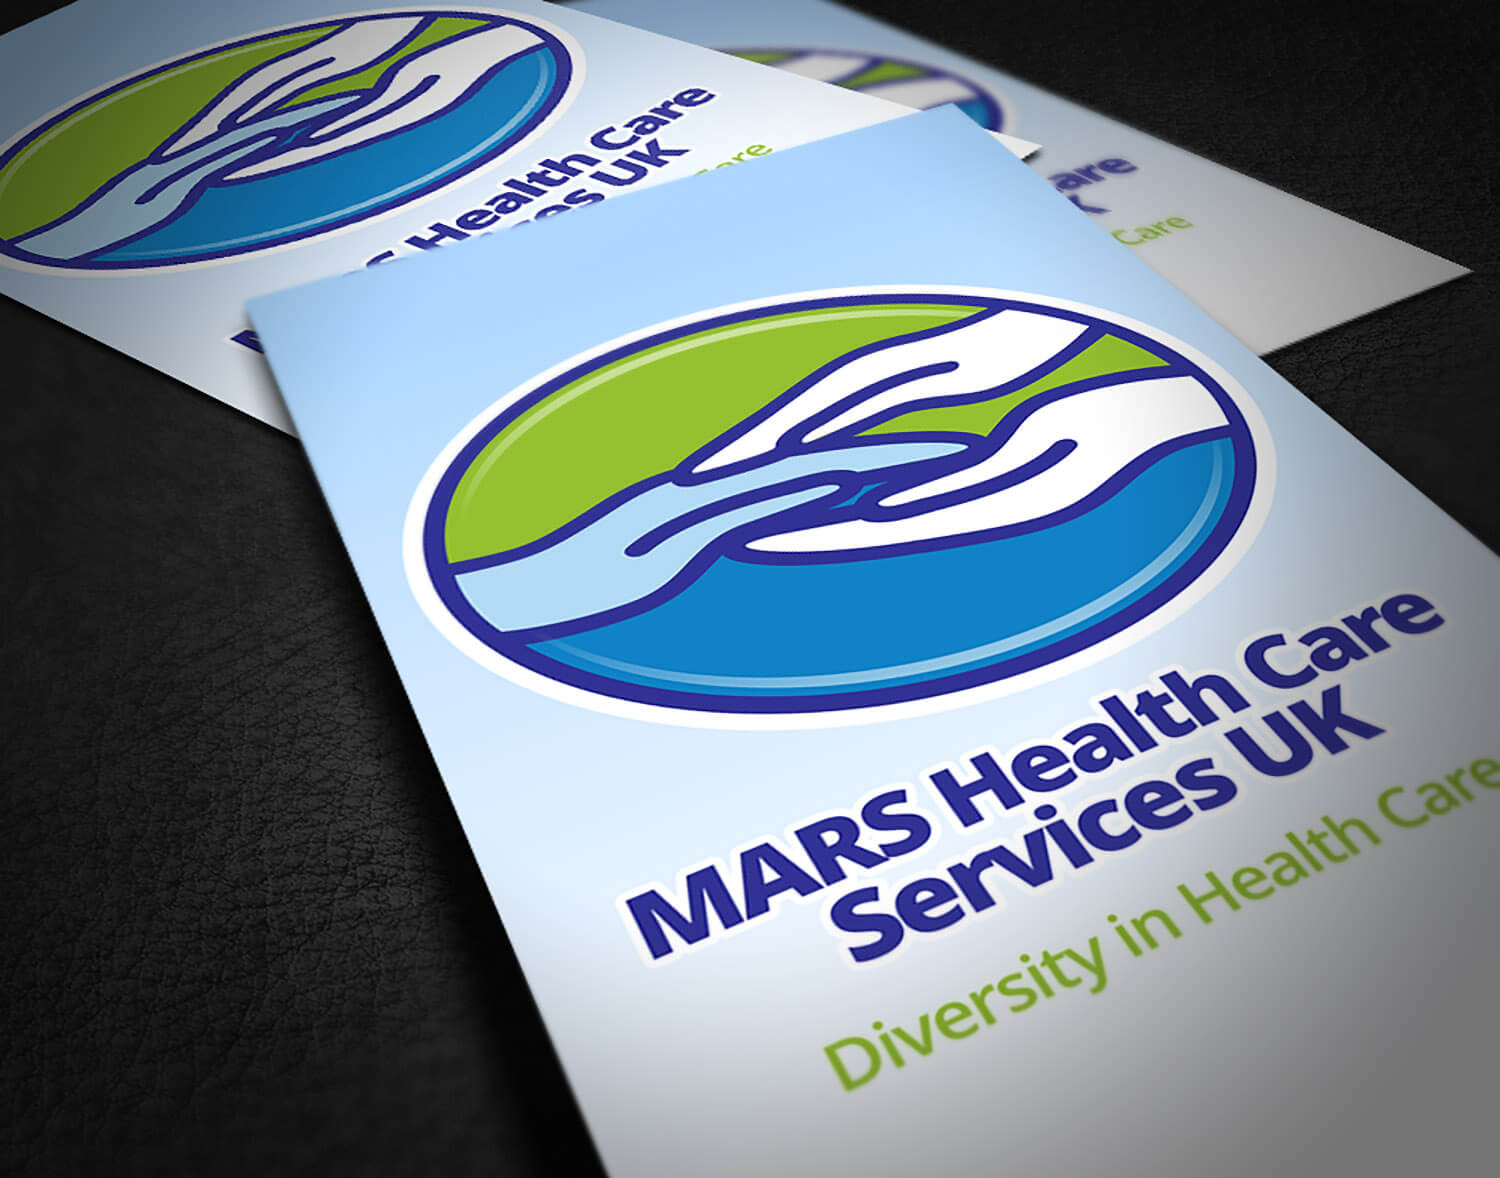 MARS Health Care Services UK